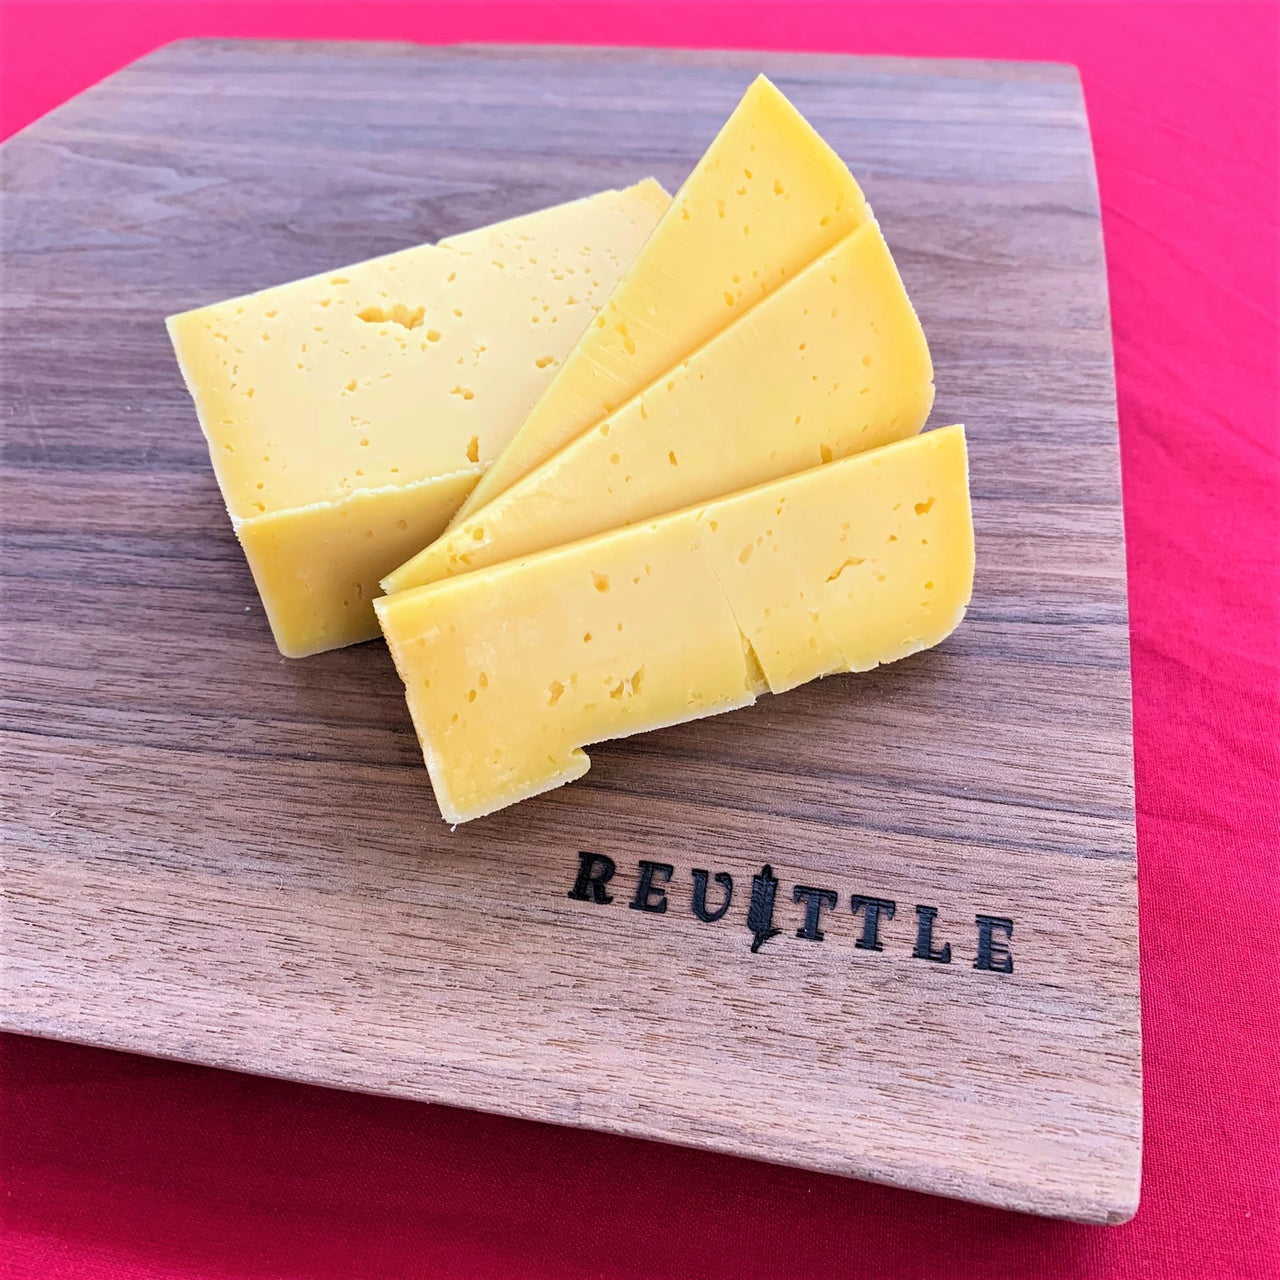 Revittle Fontina Cut on Cheeseboard | Revittle